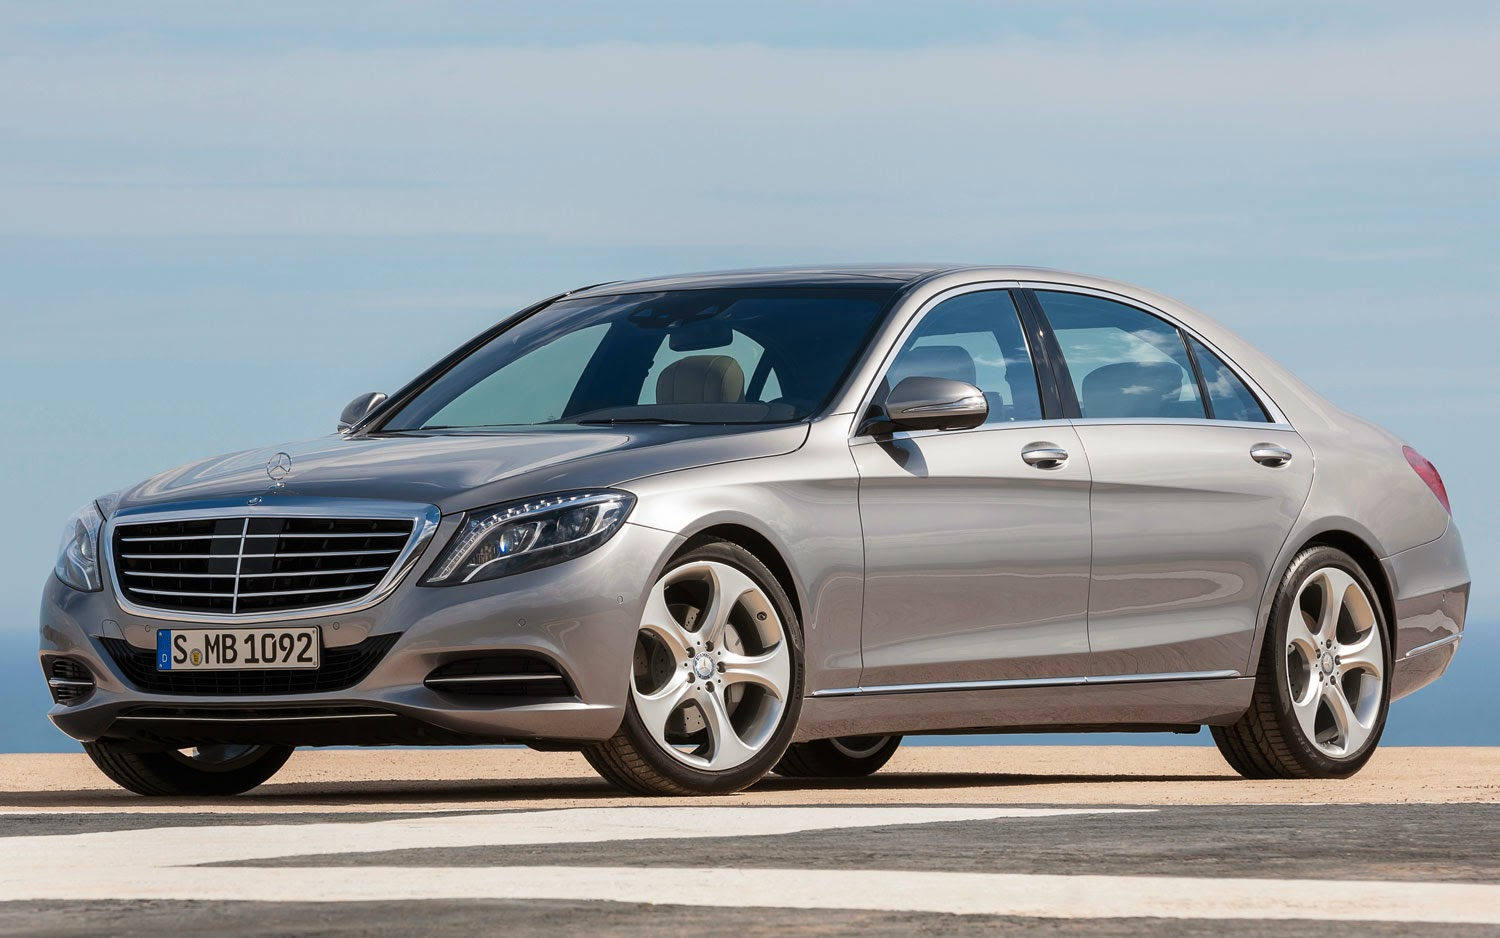 2014 mercedes benz s class review price and design for 2014 mercedes benz s550 review